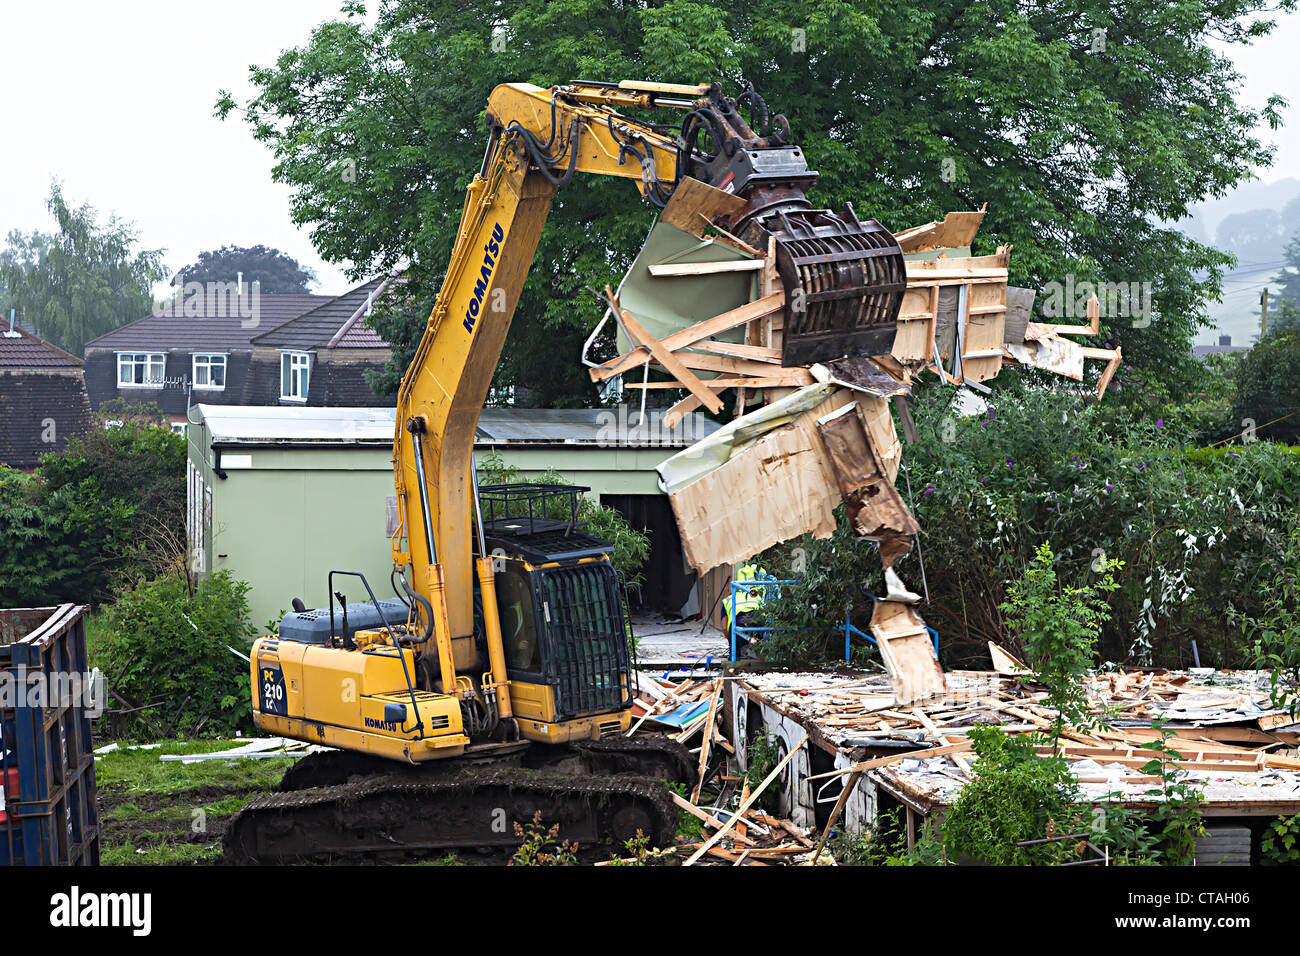 Demolition of old school buildings, Llanfoist village school, Monmouthshire, Wales, UK - Stock Image